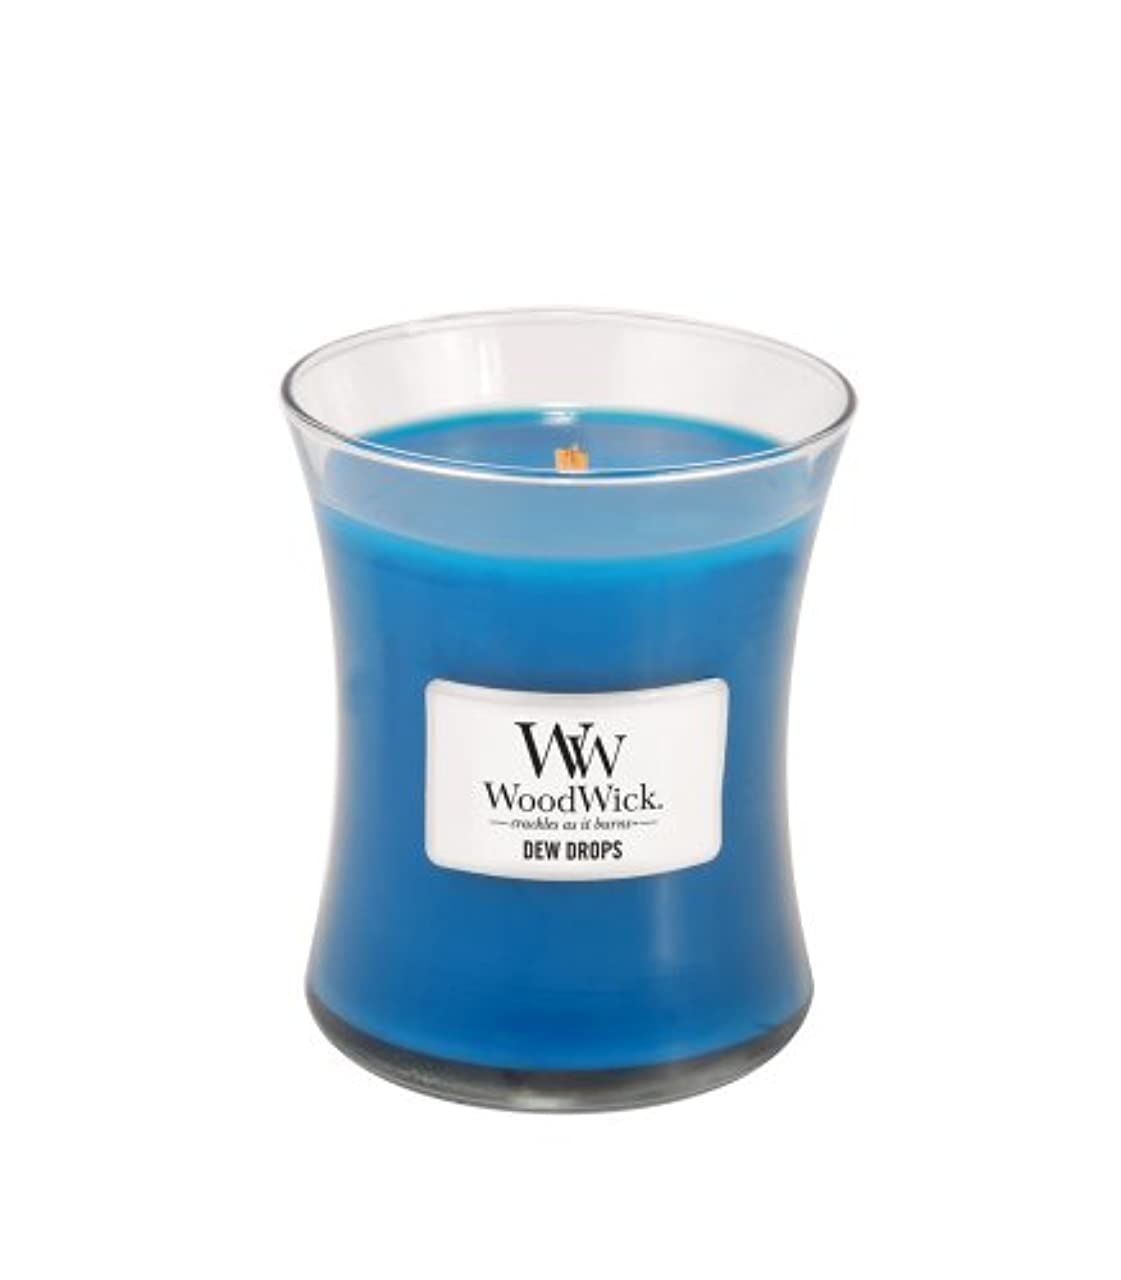 ツーリストスキャンダラス主(Medium) - WoodWick Dew Drops Fragrance Jar Candle, Medium